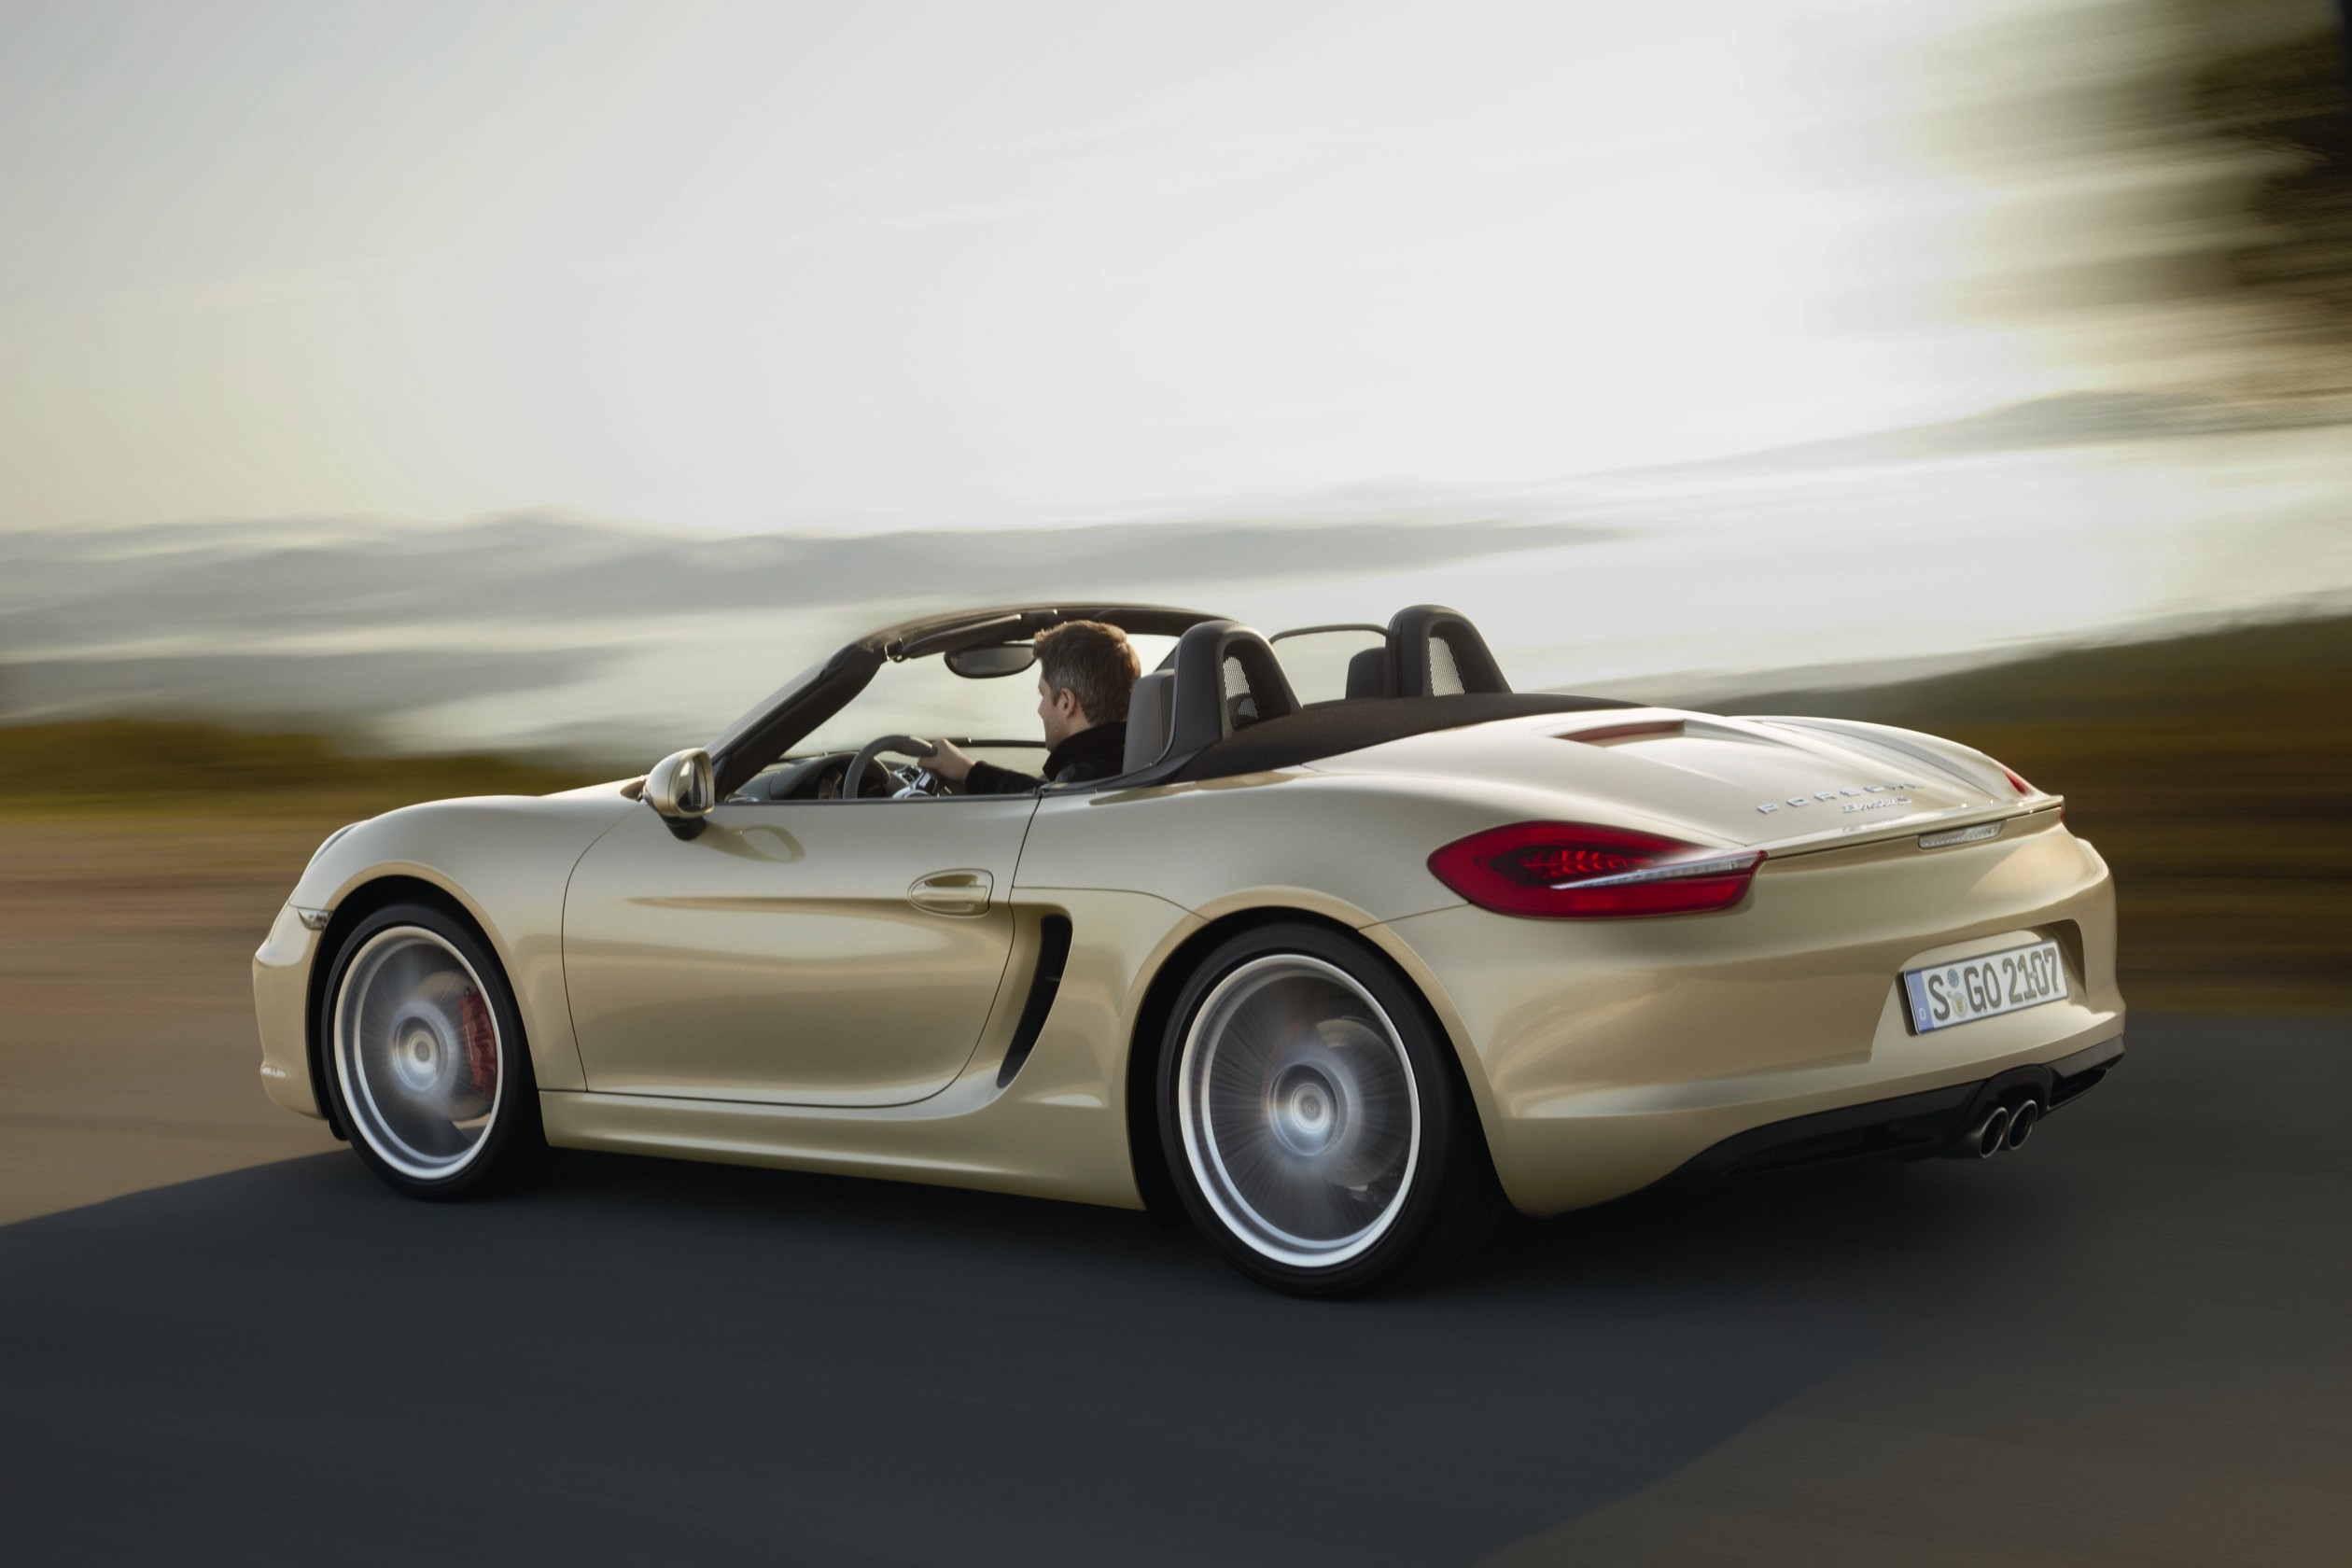 2012 Porsche Boxster Convertible 2-door